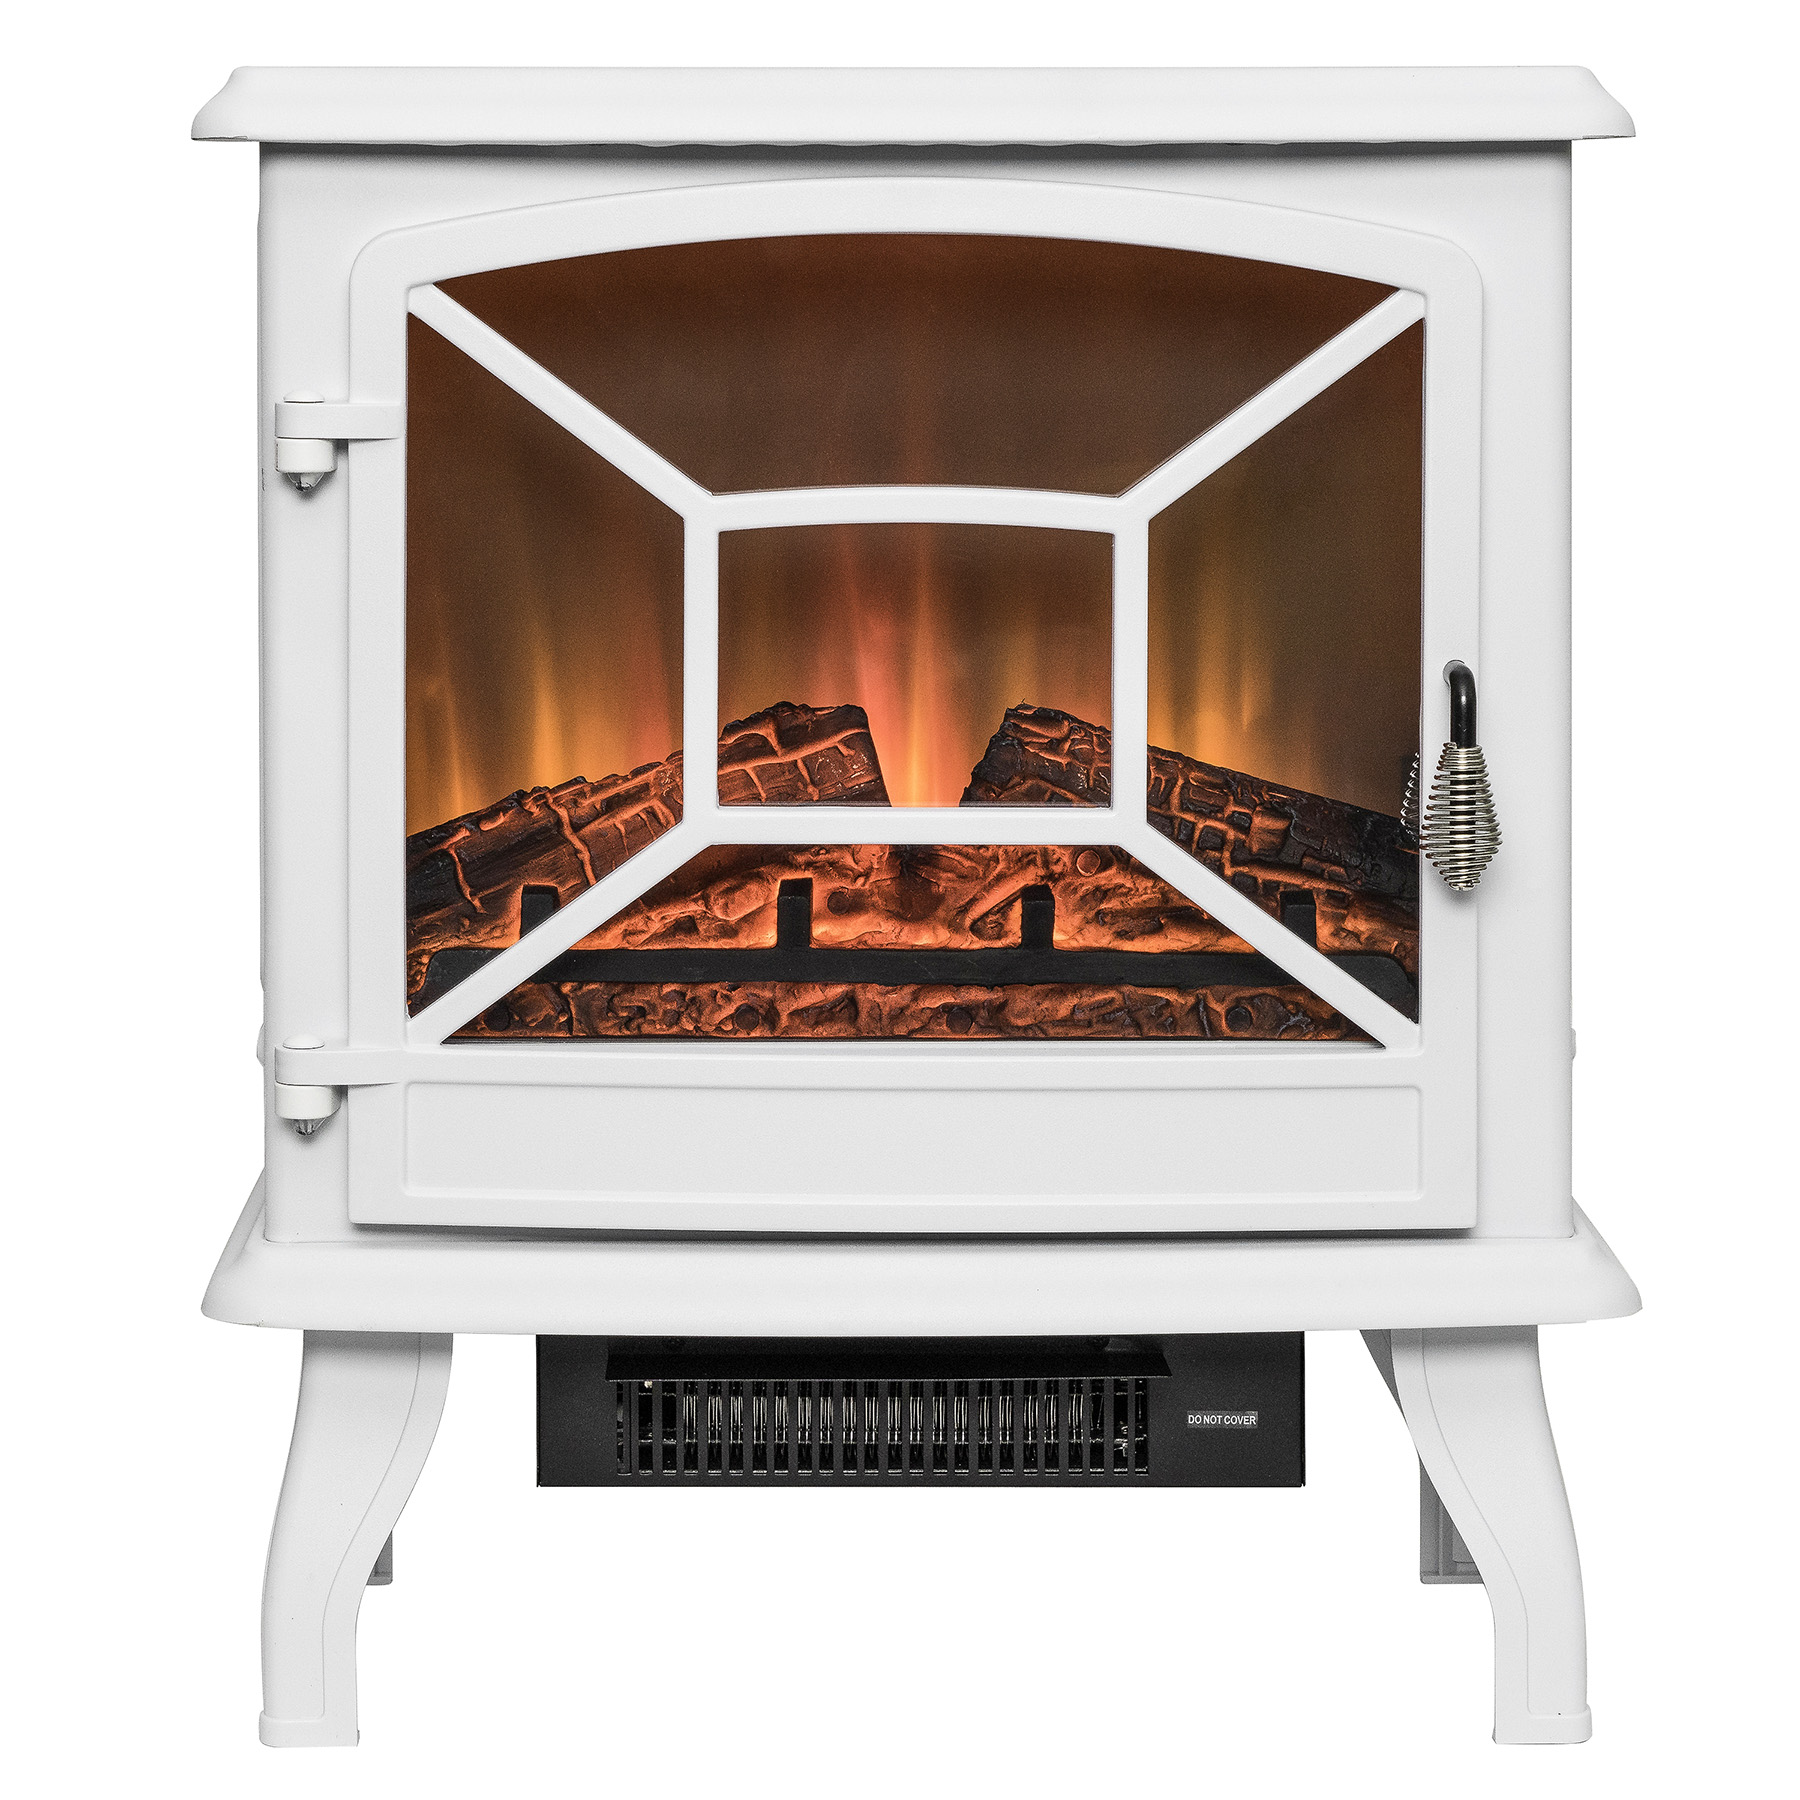 "AKDY FP0083 20"" White Freestanding Portable Electric Fireplace Firebox Heater Flames w/ Logs"